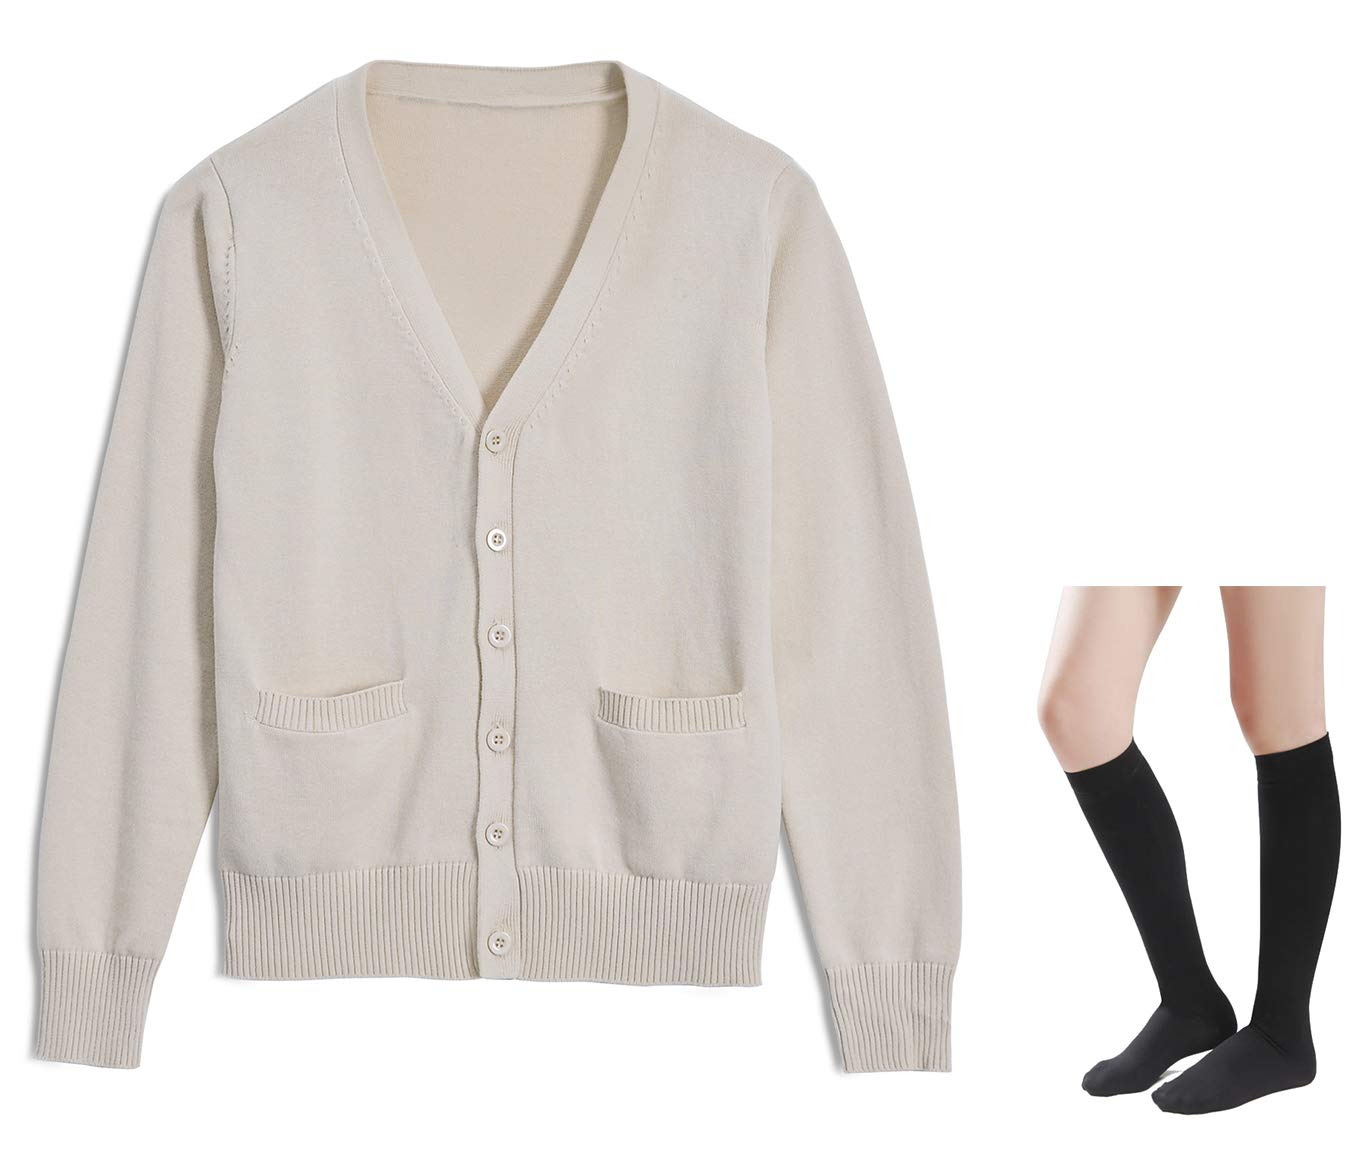 Long Sleeve deep V-Neck Knitted Button up Cardigan Sweater Anime Japanese School Girl Uniform with Socks Set(Light Apricot XL)